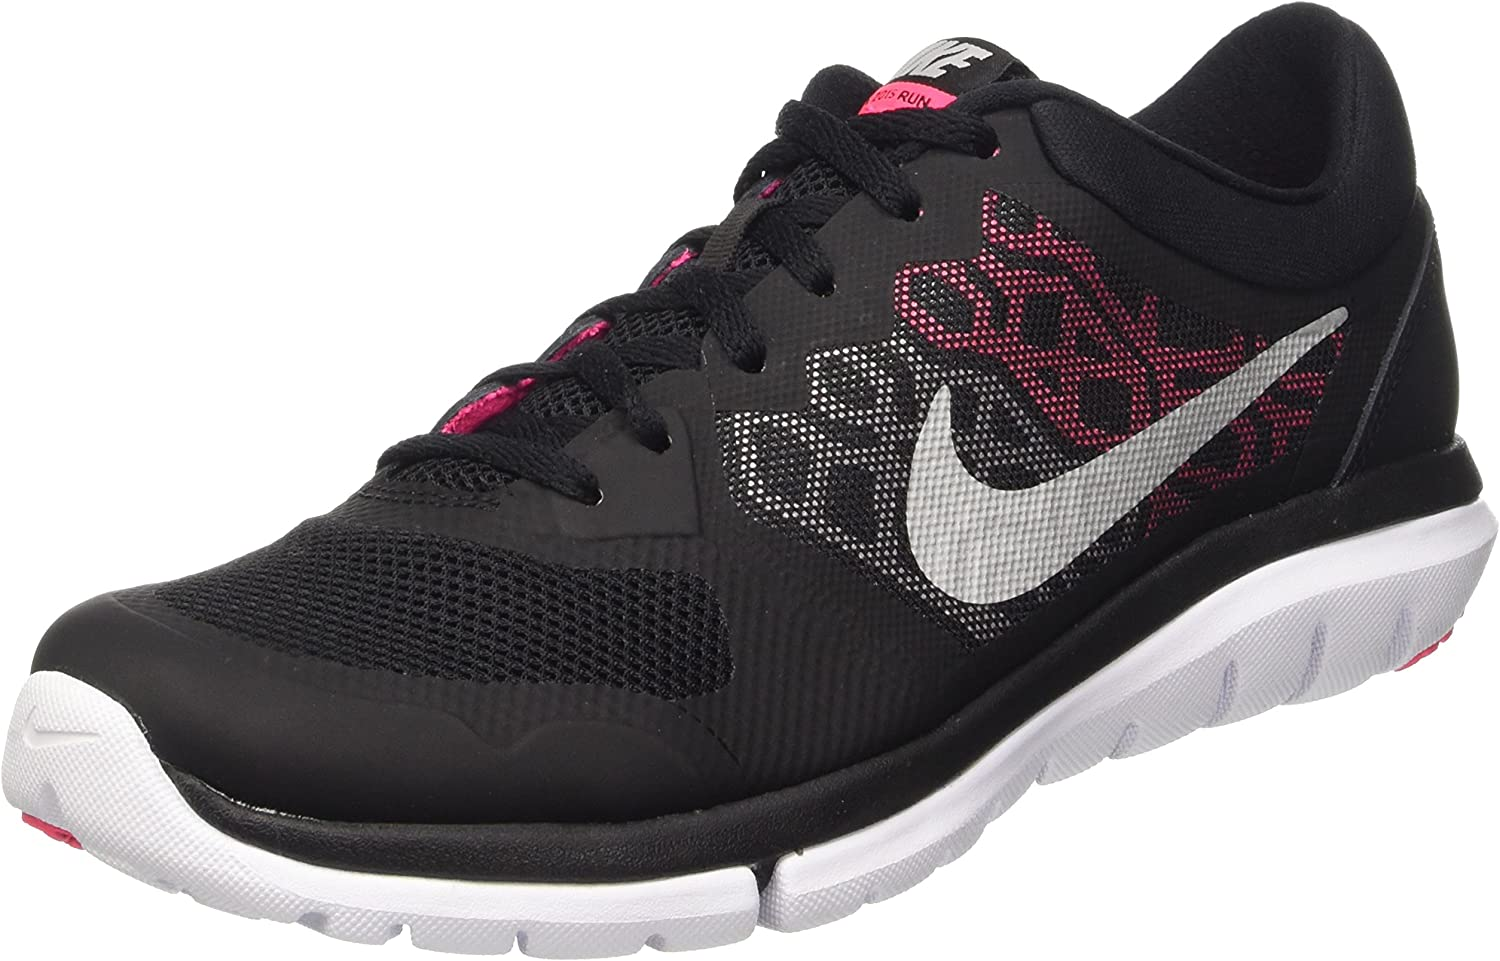 Nike Women s Flex Run 2015 Running Shoe Black Pink Metallic Silver Size 9.5 M US